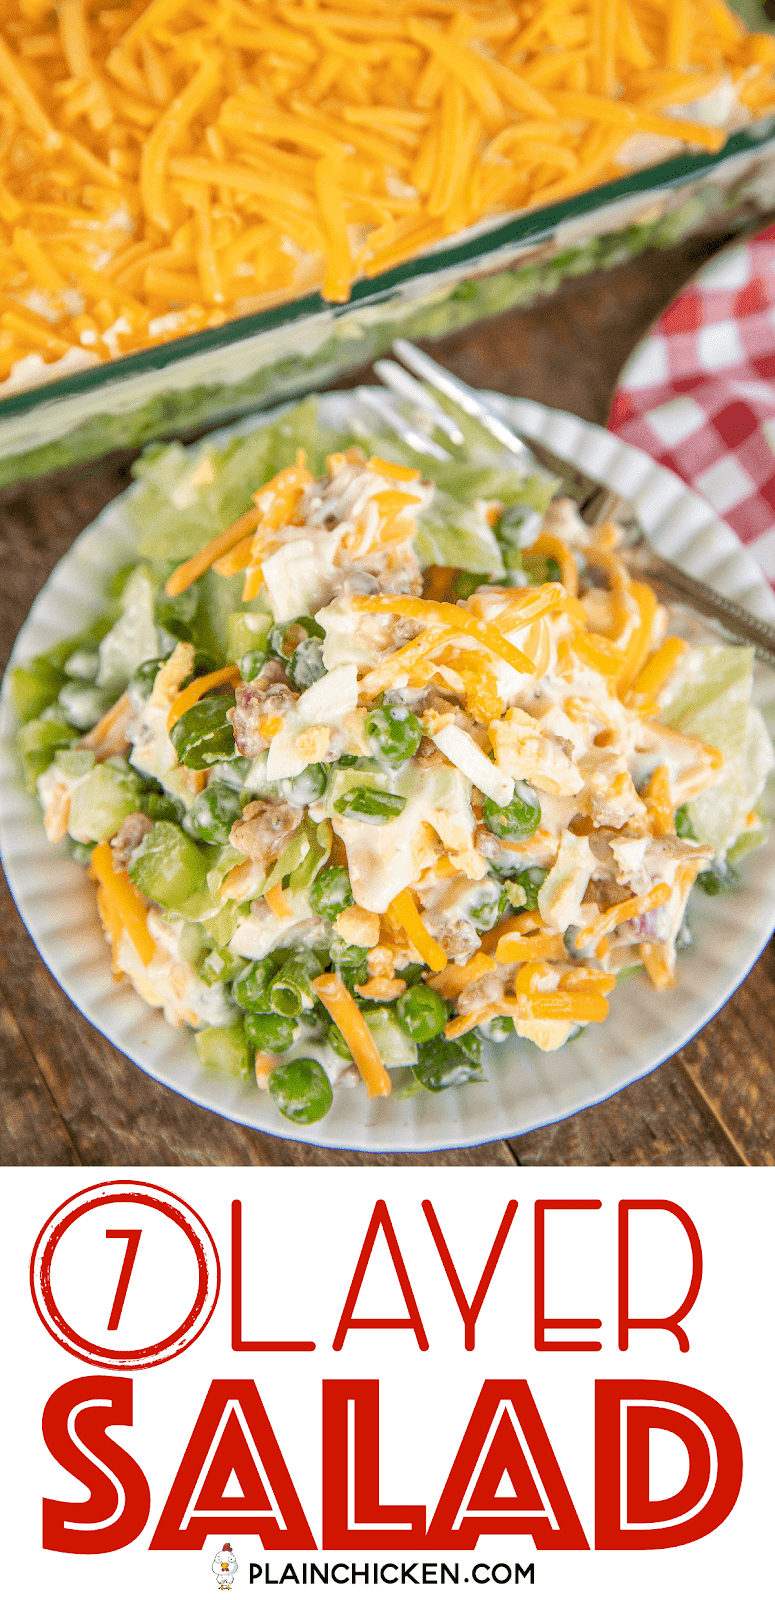 7 Layer Salad Recipe A Classic Recipe Layers Of Lettuce Green Onions Celery Green Peas Hard Boiled Egg Layered Salad Salad Recipes Layered Salad Recipes